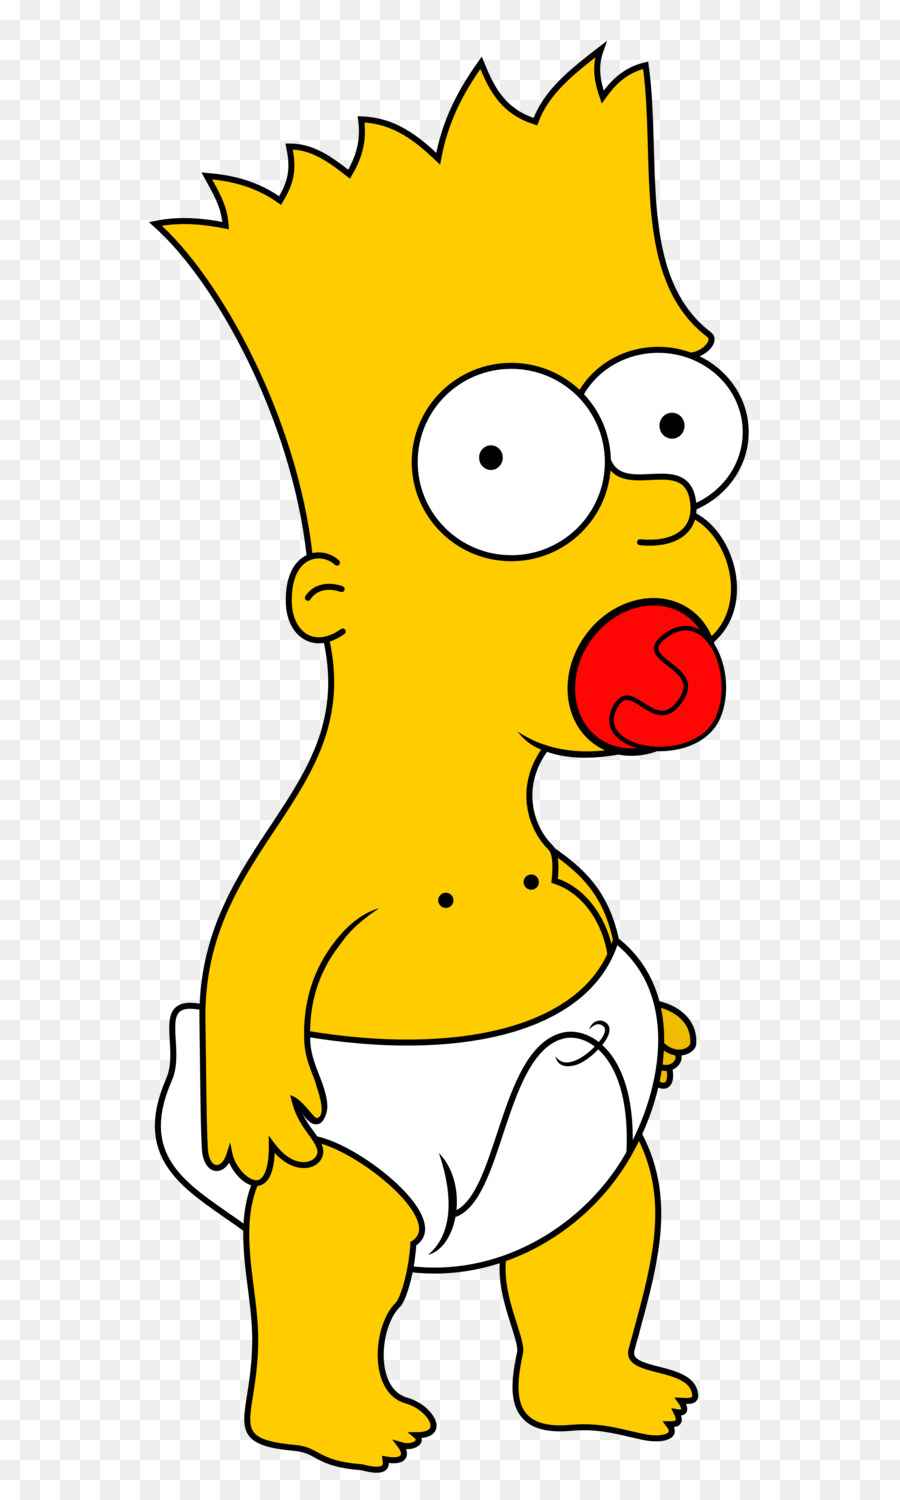 900x1500 Bart Simpson Maggie Simpson Lisa Simpson Homer Simpson Marge